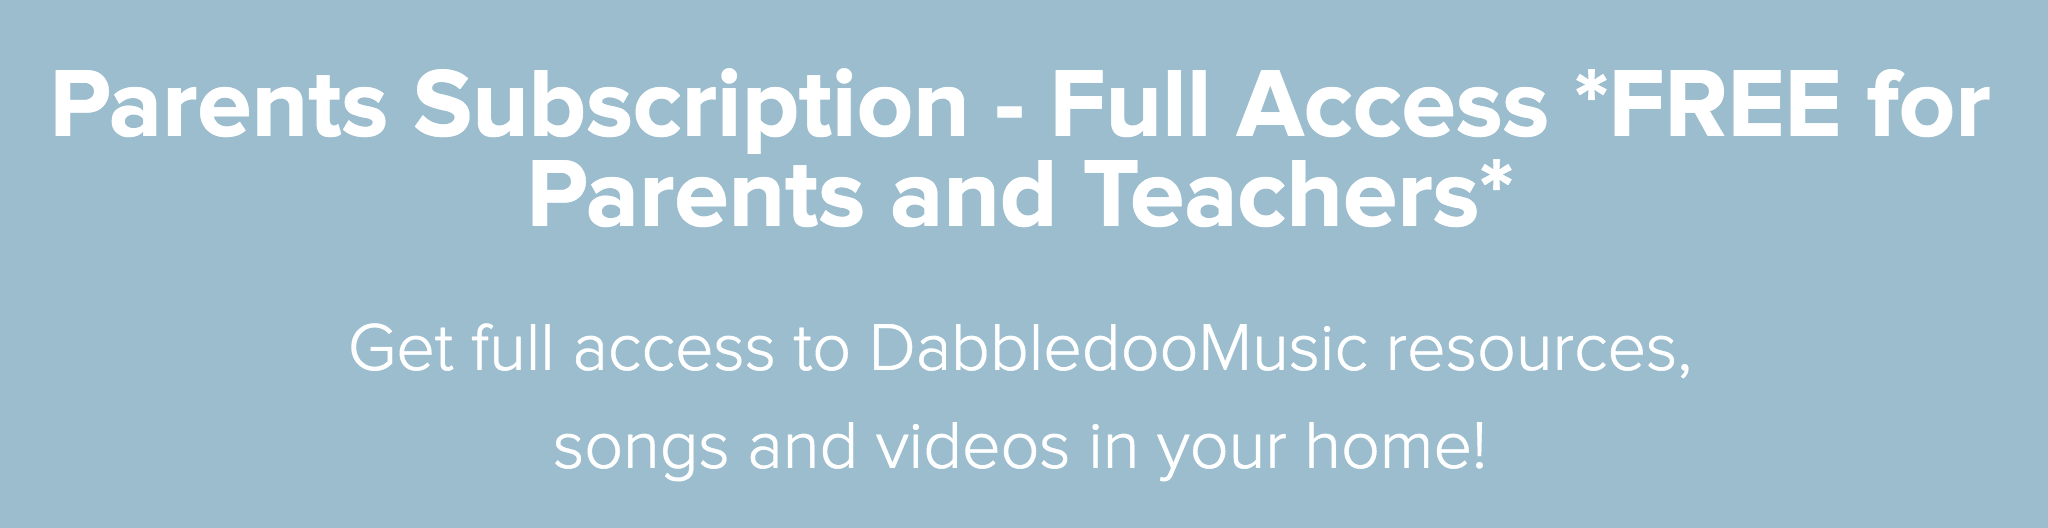 DabbledooMusic Parents' Course